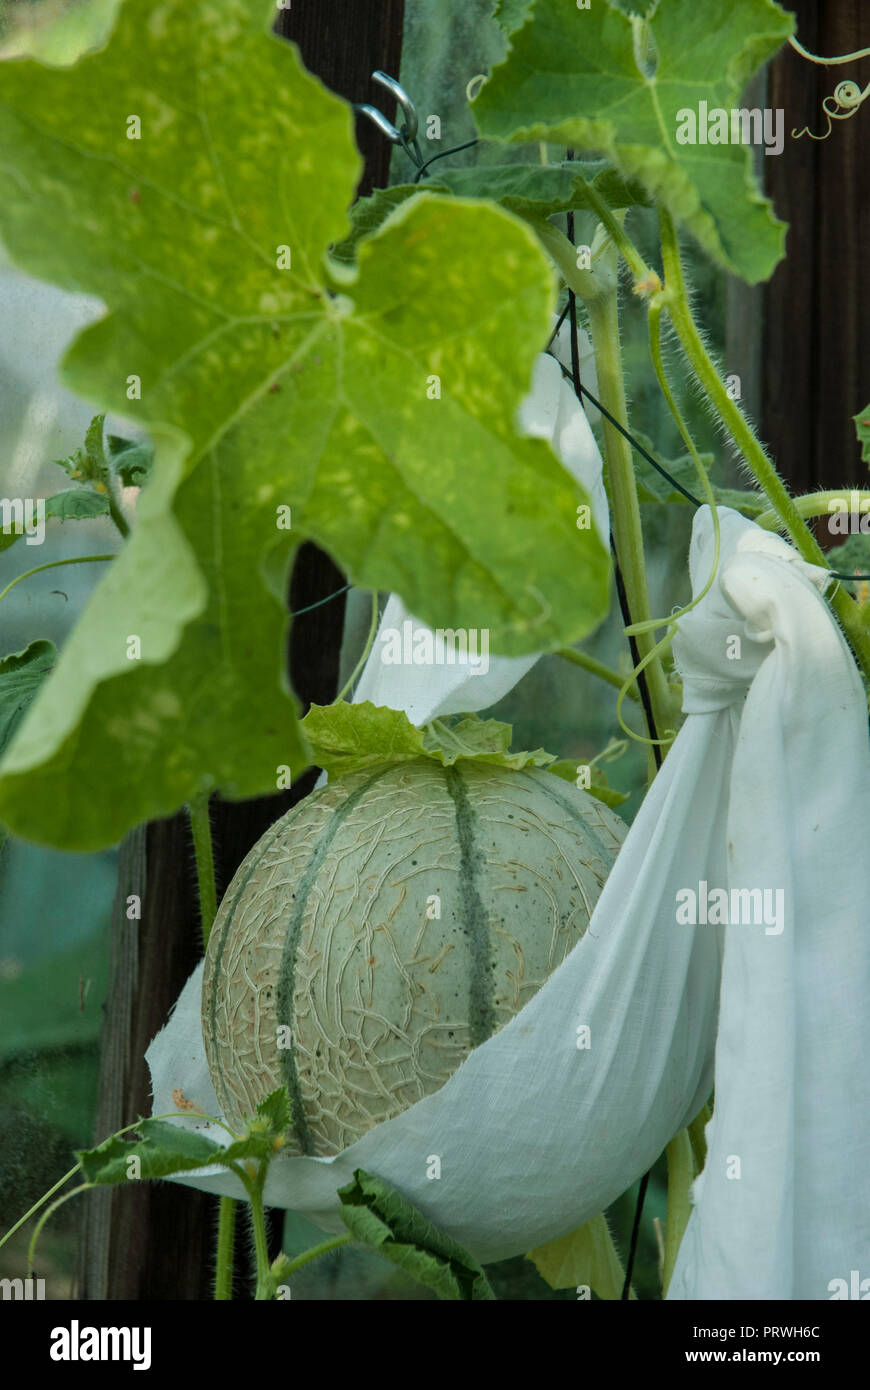 Charentais cantaloupe melon supported in a sling. How to grow and support melons with a 'sling support' as it thrives in a green house in London UK - Stock Image